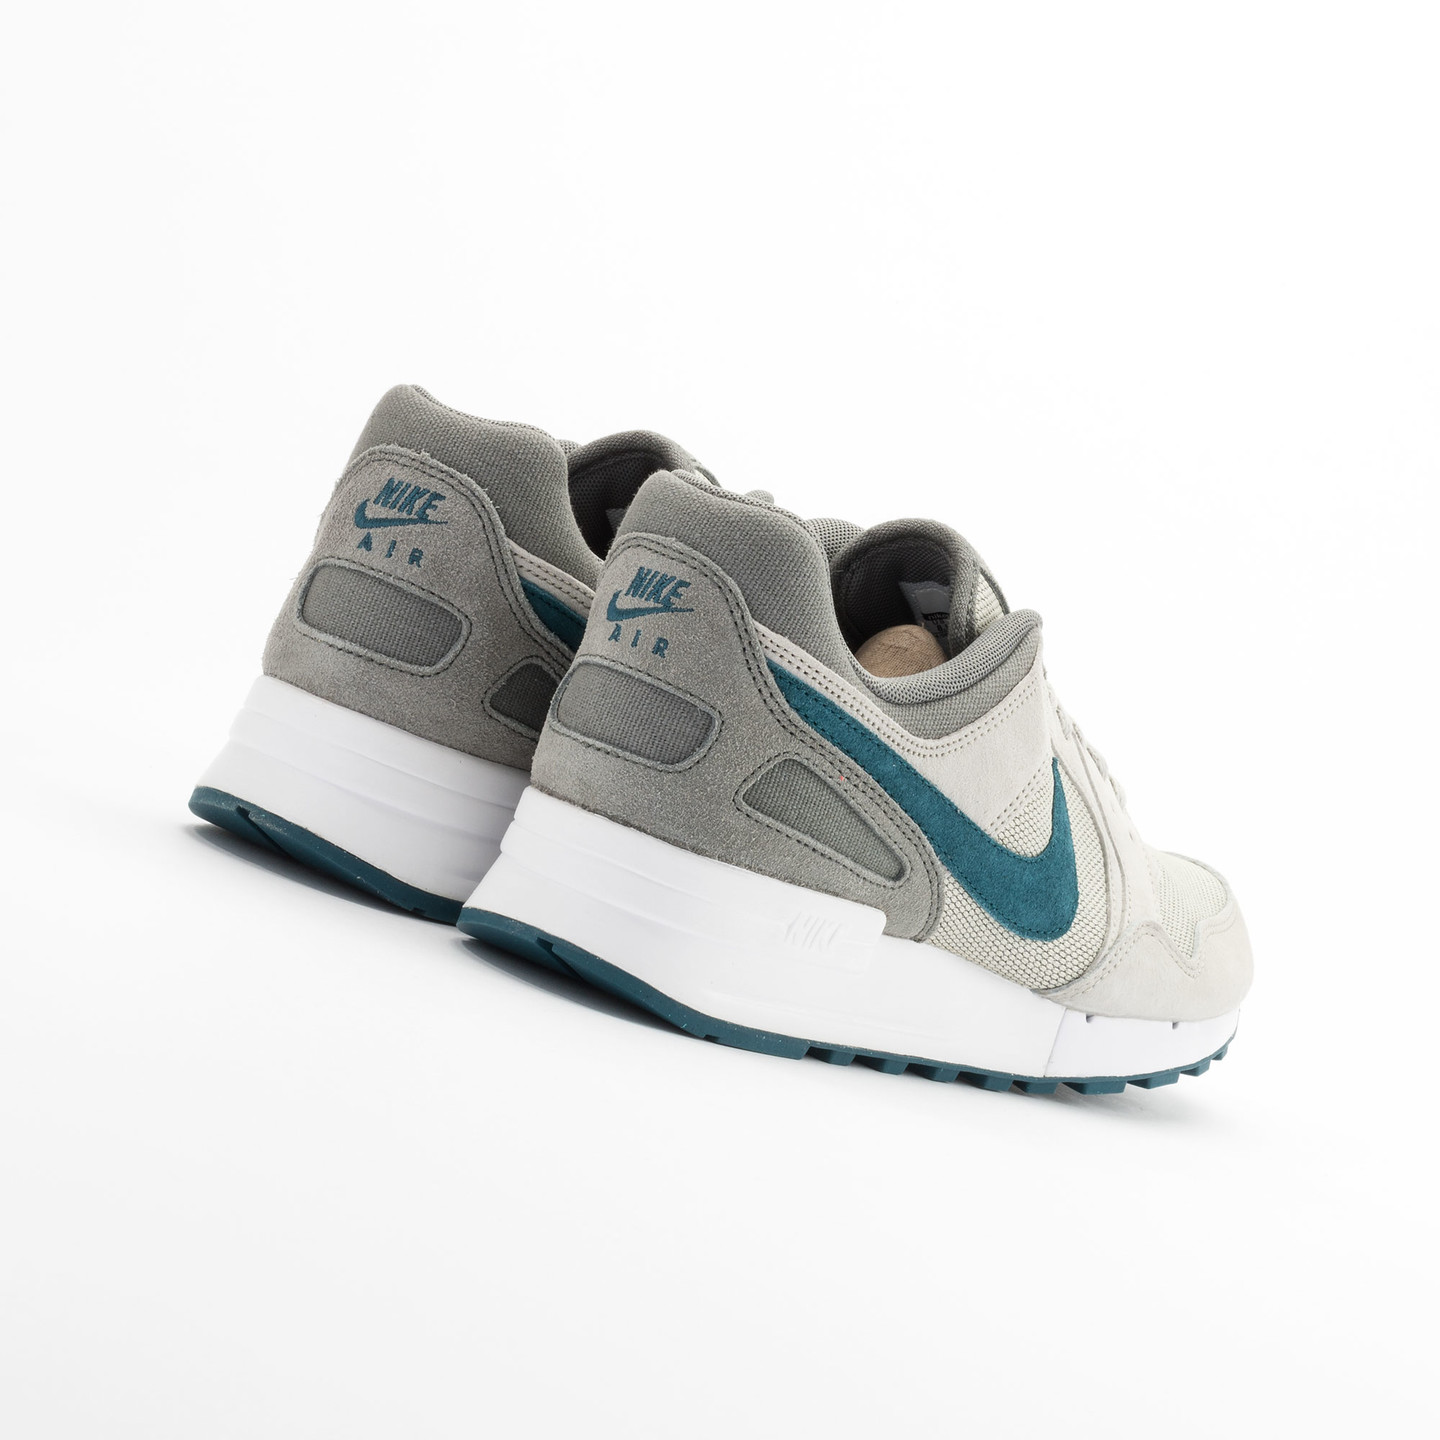 Nike Air Pegasus 89 Premium Lunar Grey / Teal - Tumbled Grey 724269-030-44